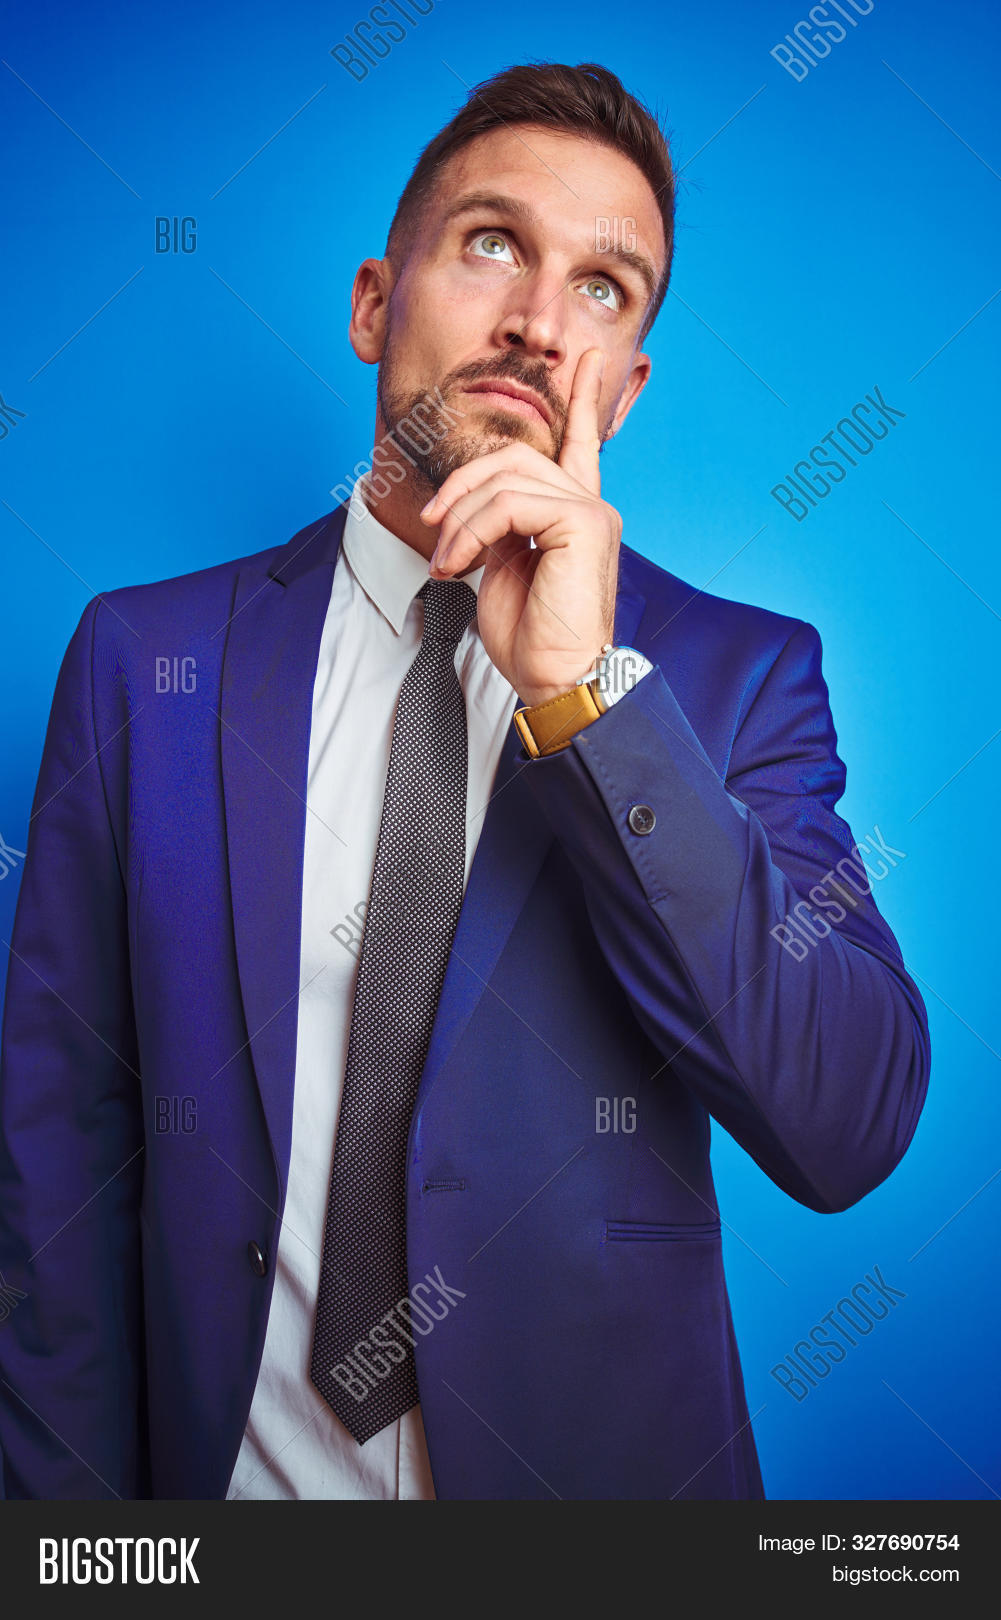 Vertical angle picture of young handsome business man over blue isolated background with hand on chin thinking about question, pensive expression. Smiling with thoughtful face. Doubt concept.